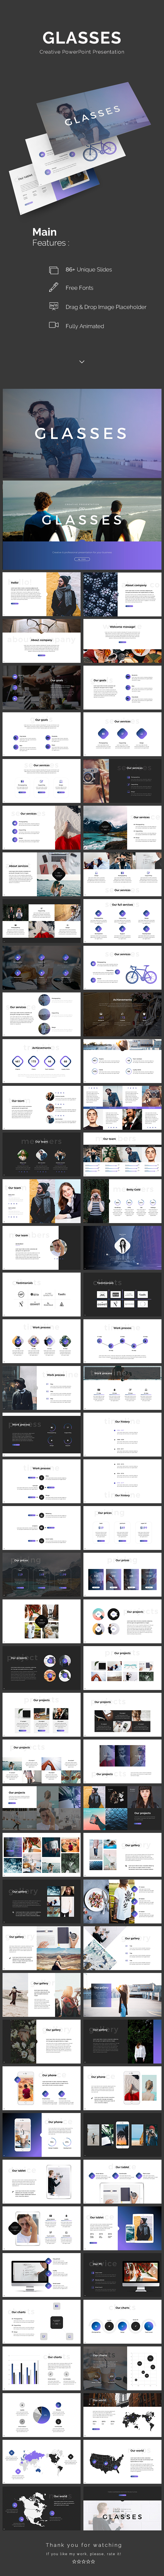 Glasses PowerPoint Template - PowerPoint Templates Presentation Templates